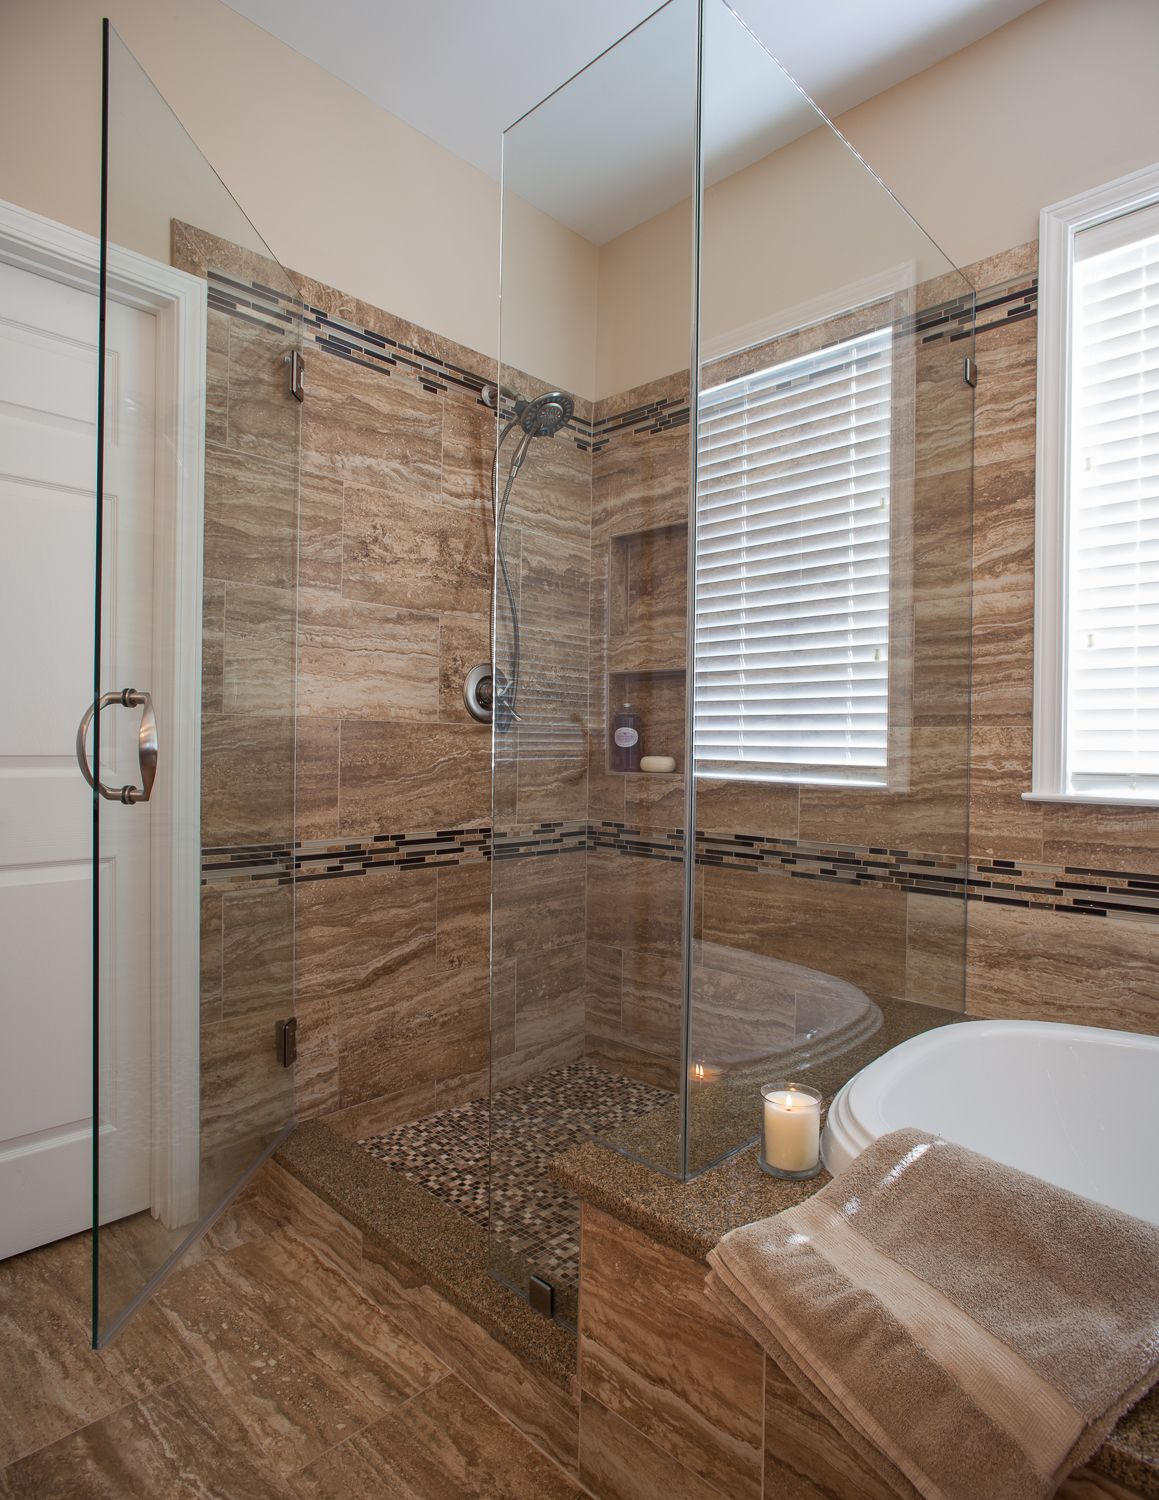 walk in shower ideas for master bathroom with glass divider and wooden wall and blinds window - Small Master Bathroom Designs